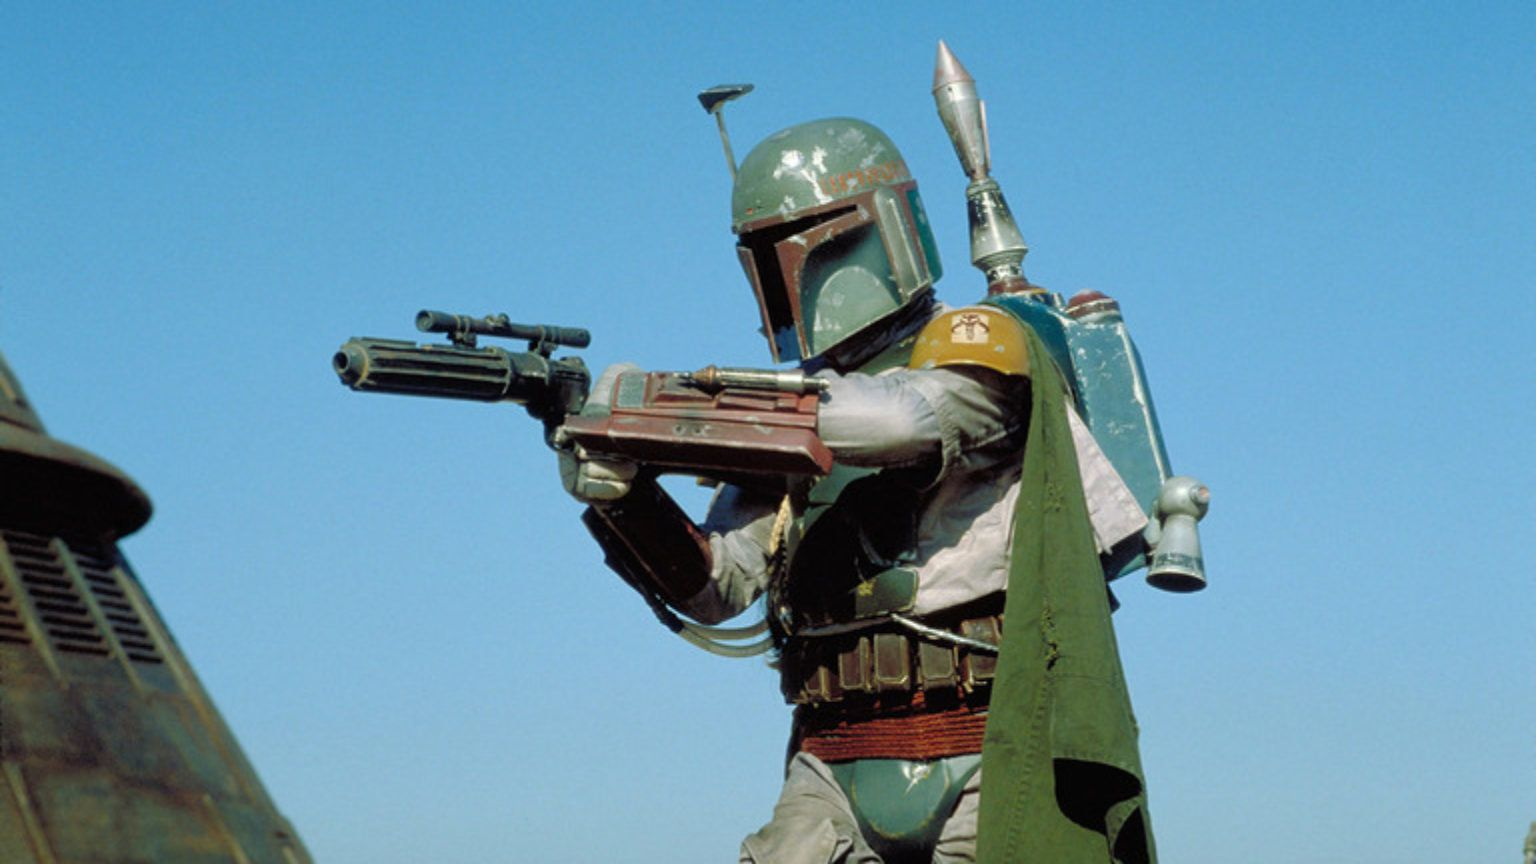 "<strong>UPDATED with <a rel=""nofollow"" href=""https://deadline.com/tag/boba-fett/"">Boba Fett</a> movie news: </strong>We've confirmed reports that Disney/Lucasfilm is no longer moving forward with a Boba Fett movie for the time being, instead zeroing on the upcoming Jon Favreau-executive produced <em><a rel=""nofollow"" href=""https://deadline.com/tag/star-wars/"">Star Wars</a> </em>series <em><a rel=""nofollow"" href=""https://deadline.com/tag/the-mandalorian/"">The Mandalorian</a>, </em>which the studio is prepping for its upcoming streaming service.  Reportedly last night, <a rel=""nofollow"" href=""https://twitter.com/ErickWeber/status/1055650705707433984"" rel=""nofollow"">Lucasfilm boss Kathleen Kennedy told Critics Choice Association journalist Erick Weber</a> at a <em>Black Panther </em>awards reception that the <em>Boba Fe…</em>"